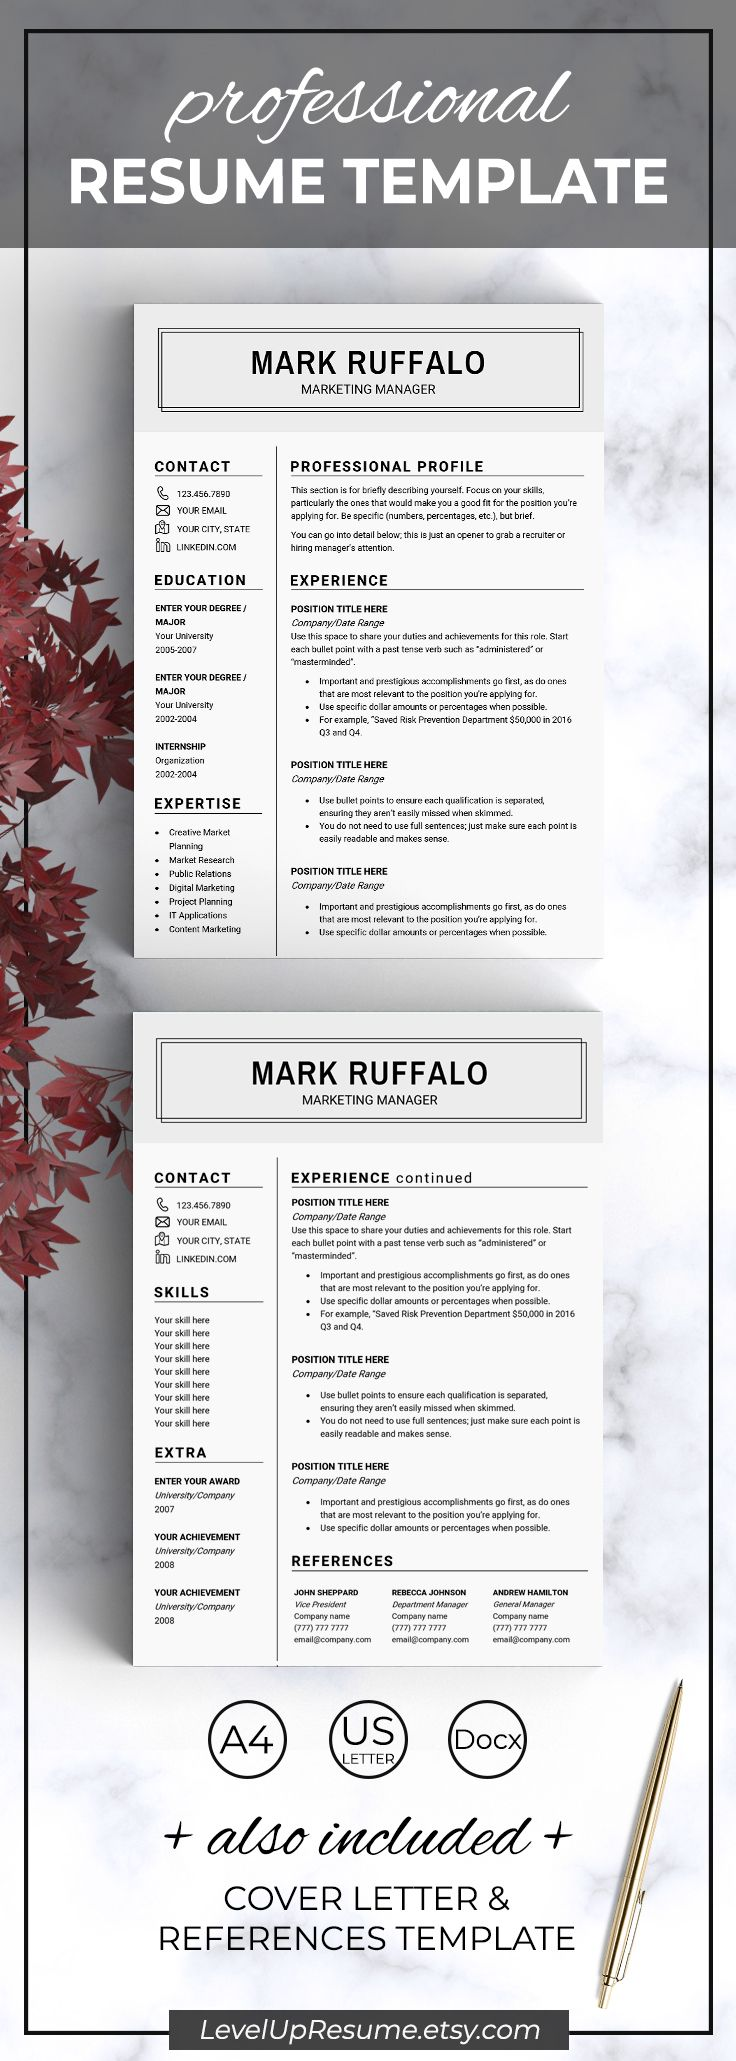 Clean And Minimal Resume Template Professional Resume Design